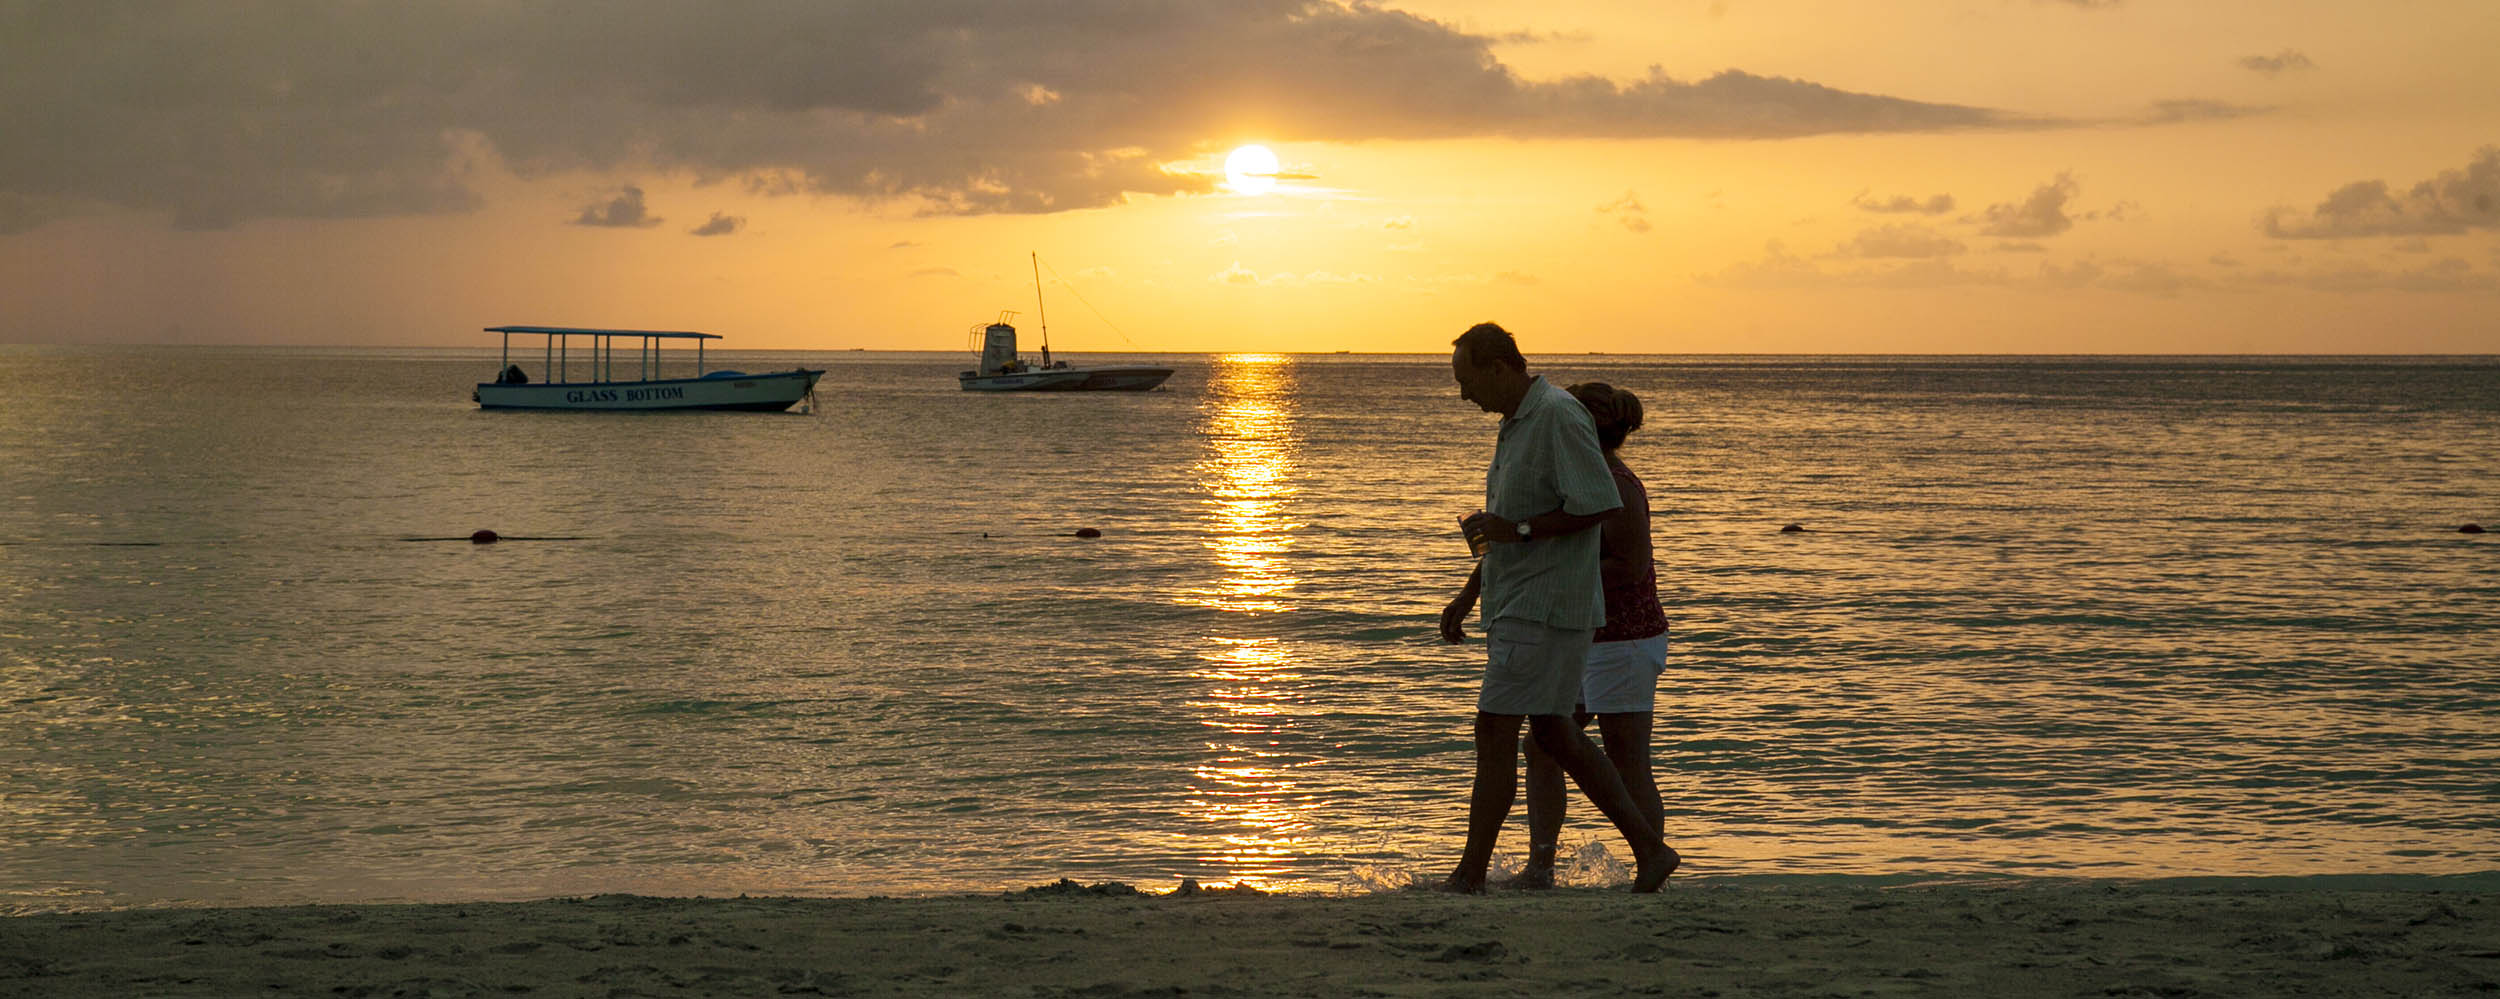 Sunset Walk Along Negril Beach, Negril Jamaica